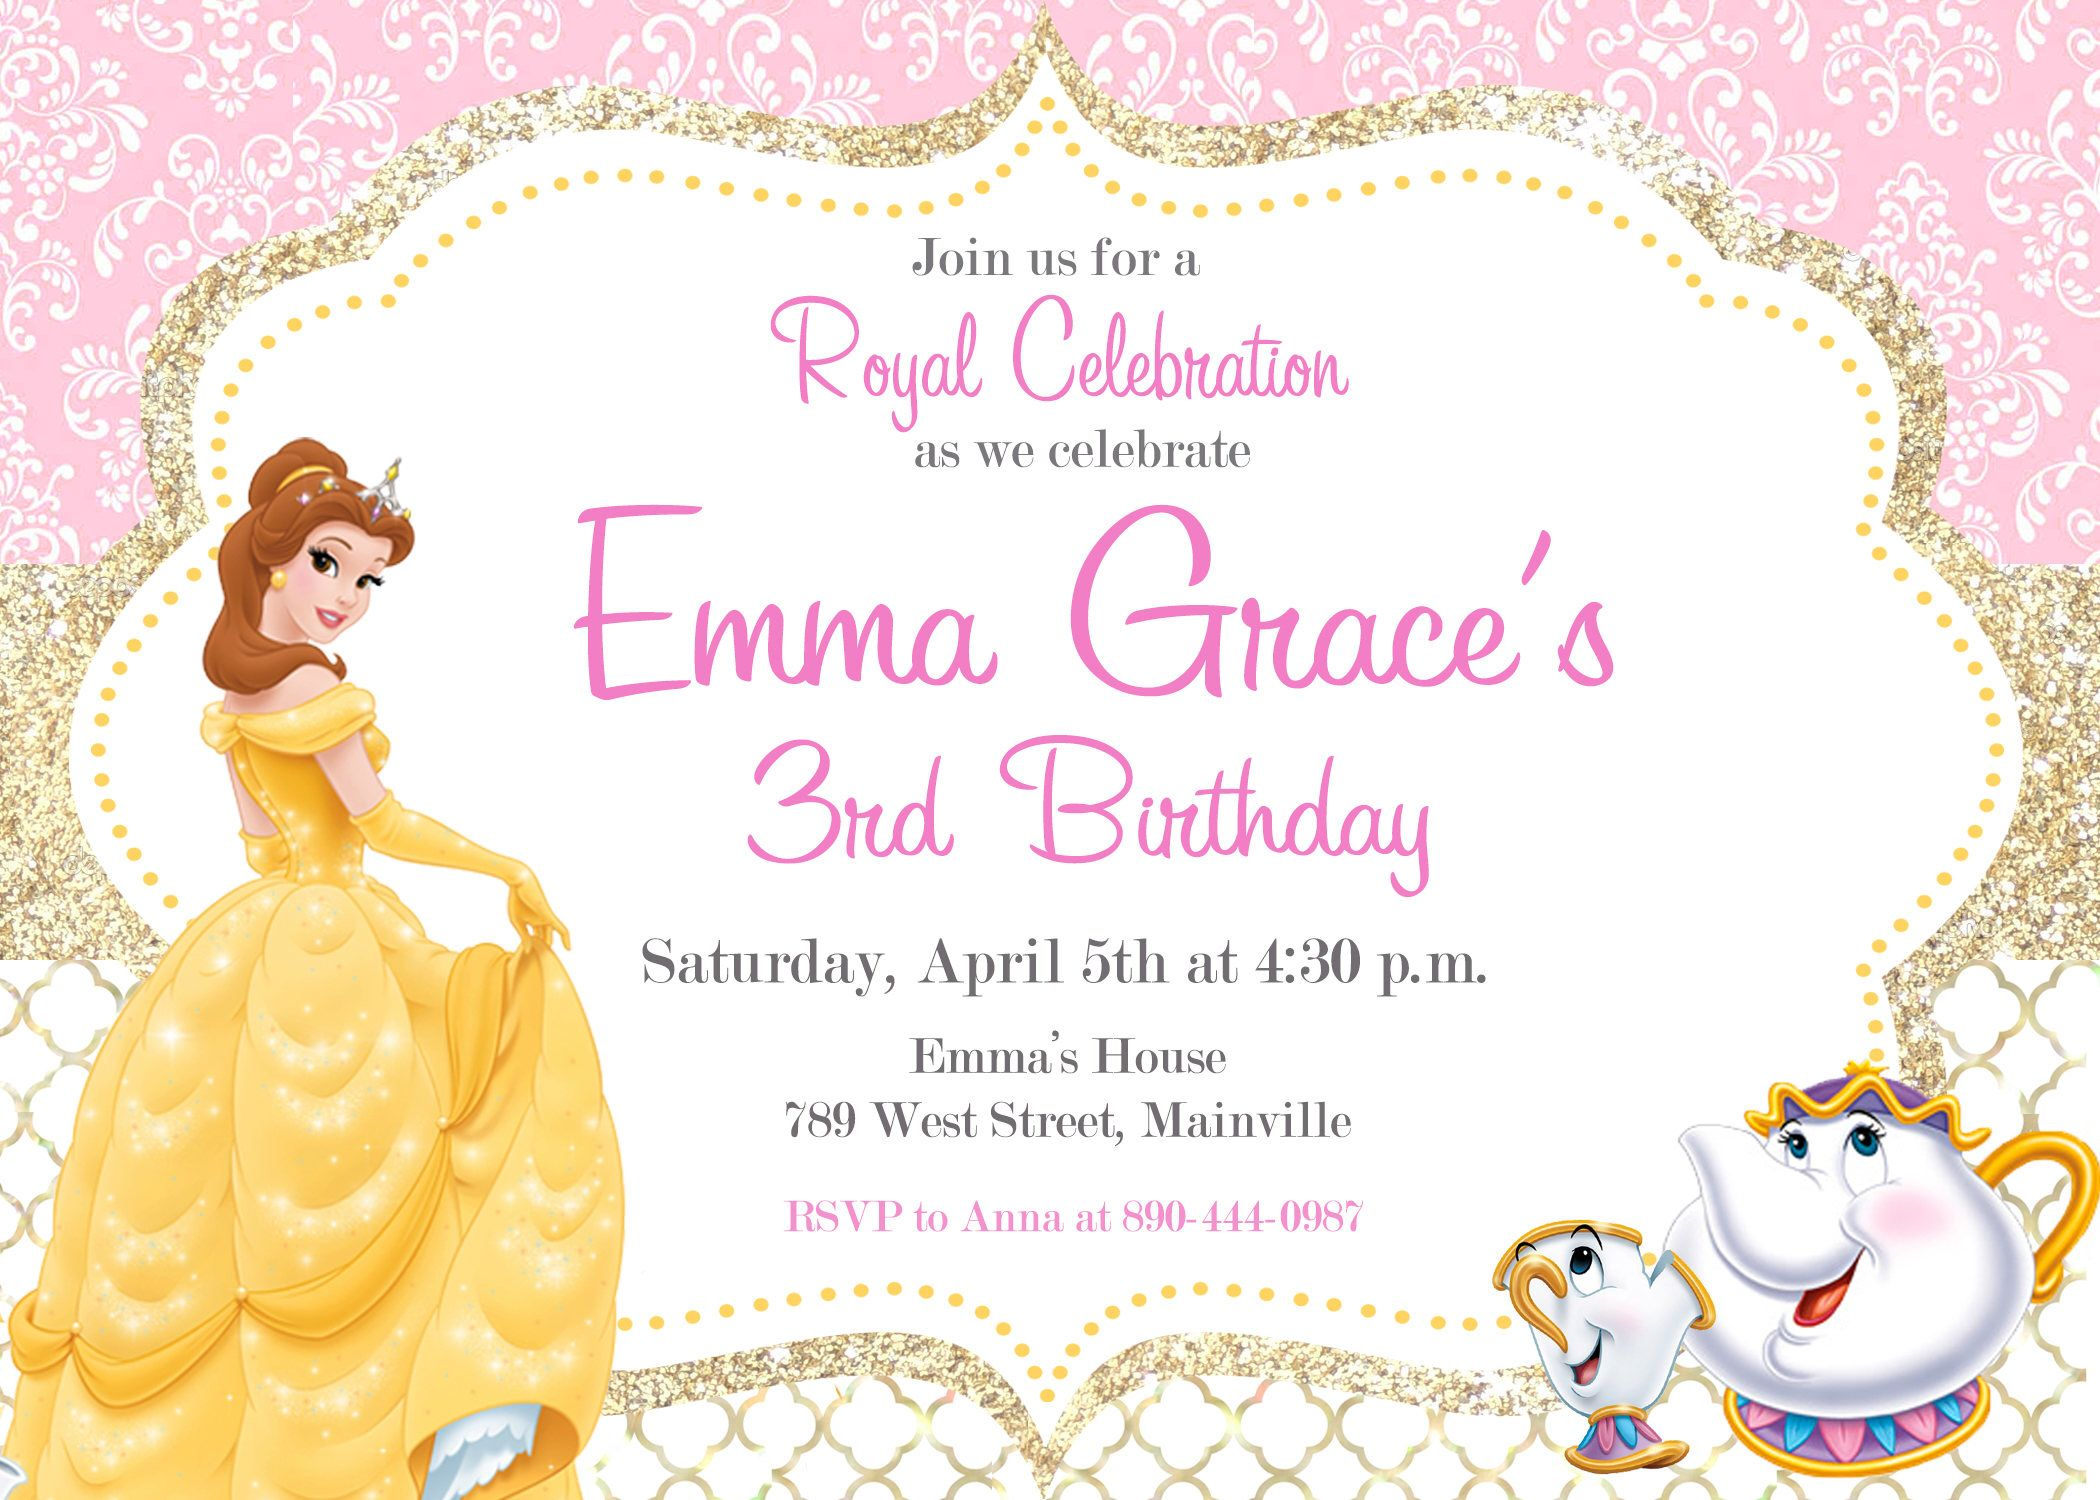 Pin by pamela hinojosa on paola 2nd pinterest princess belle beauty and the beast princess belle birthday party invitation digital or printed with free shipping filmwisefo Images